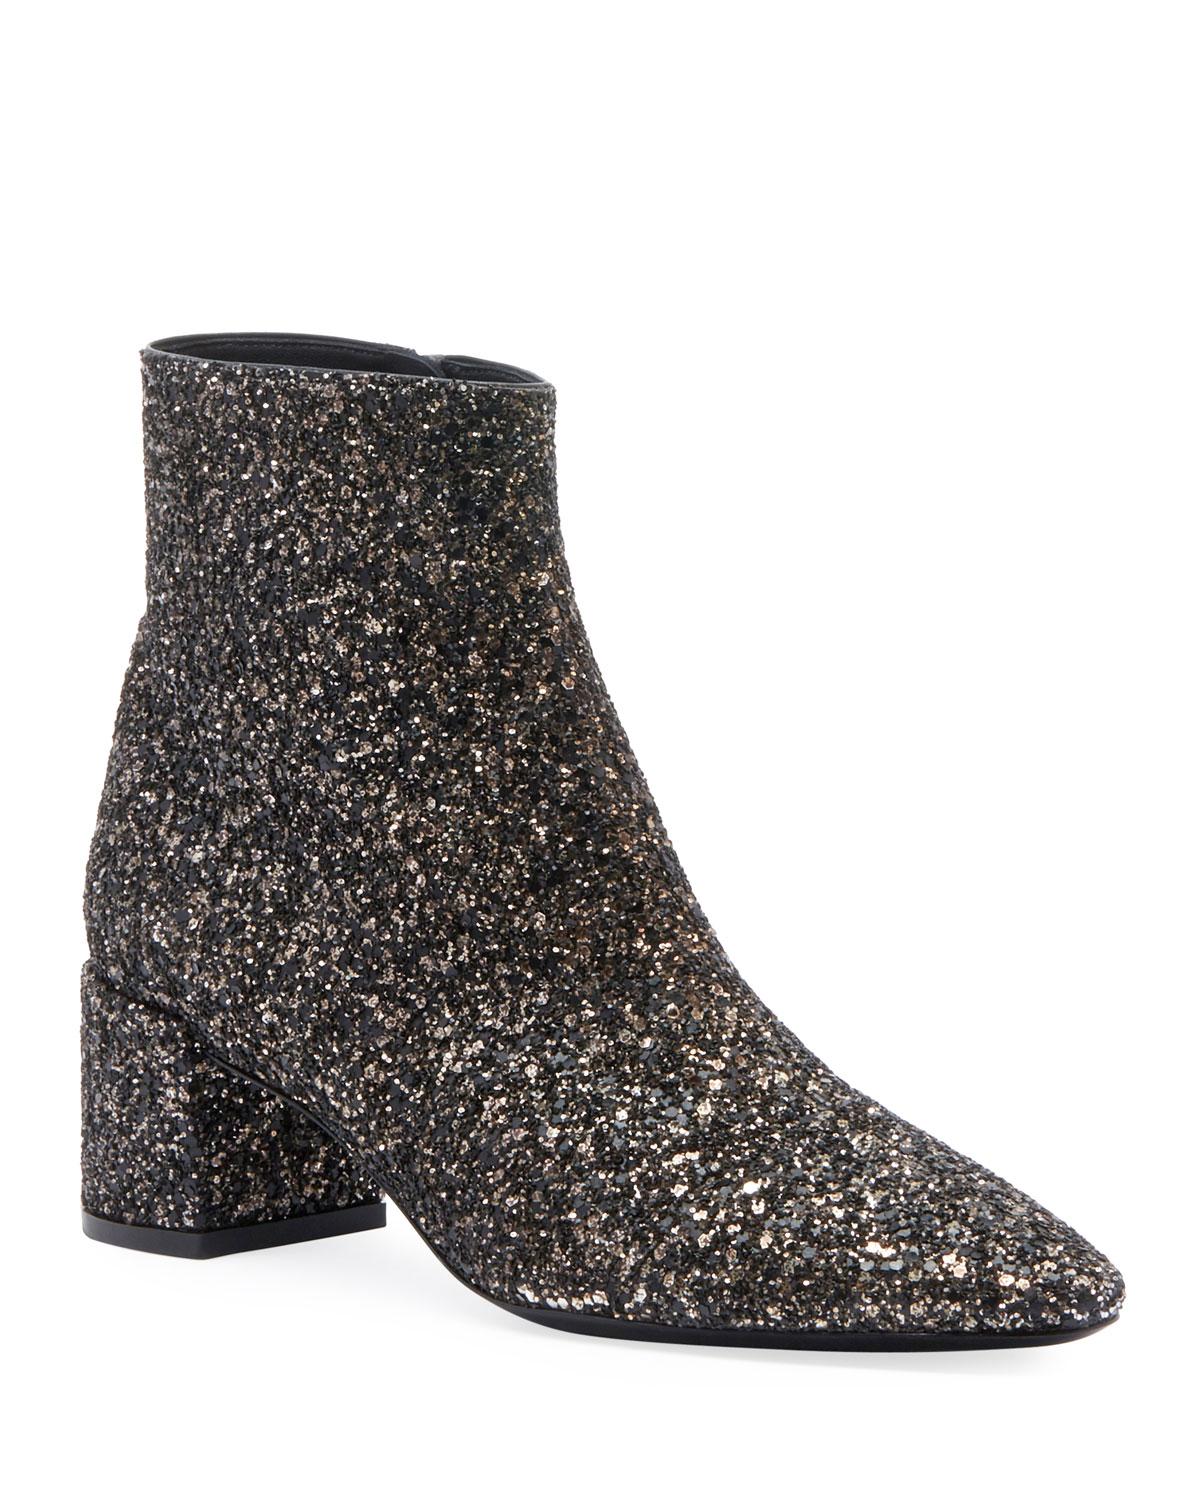 912f6c11f11 Saint Laurent LouLou Washed Glitter Booties | Neiman Marcus